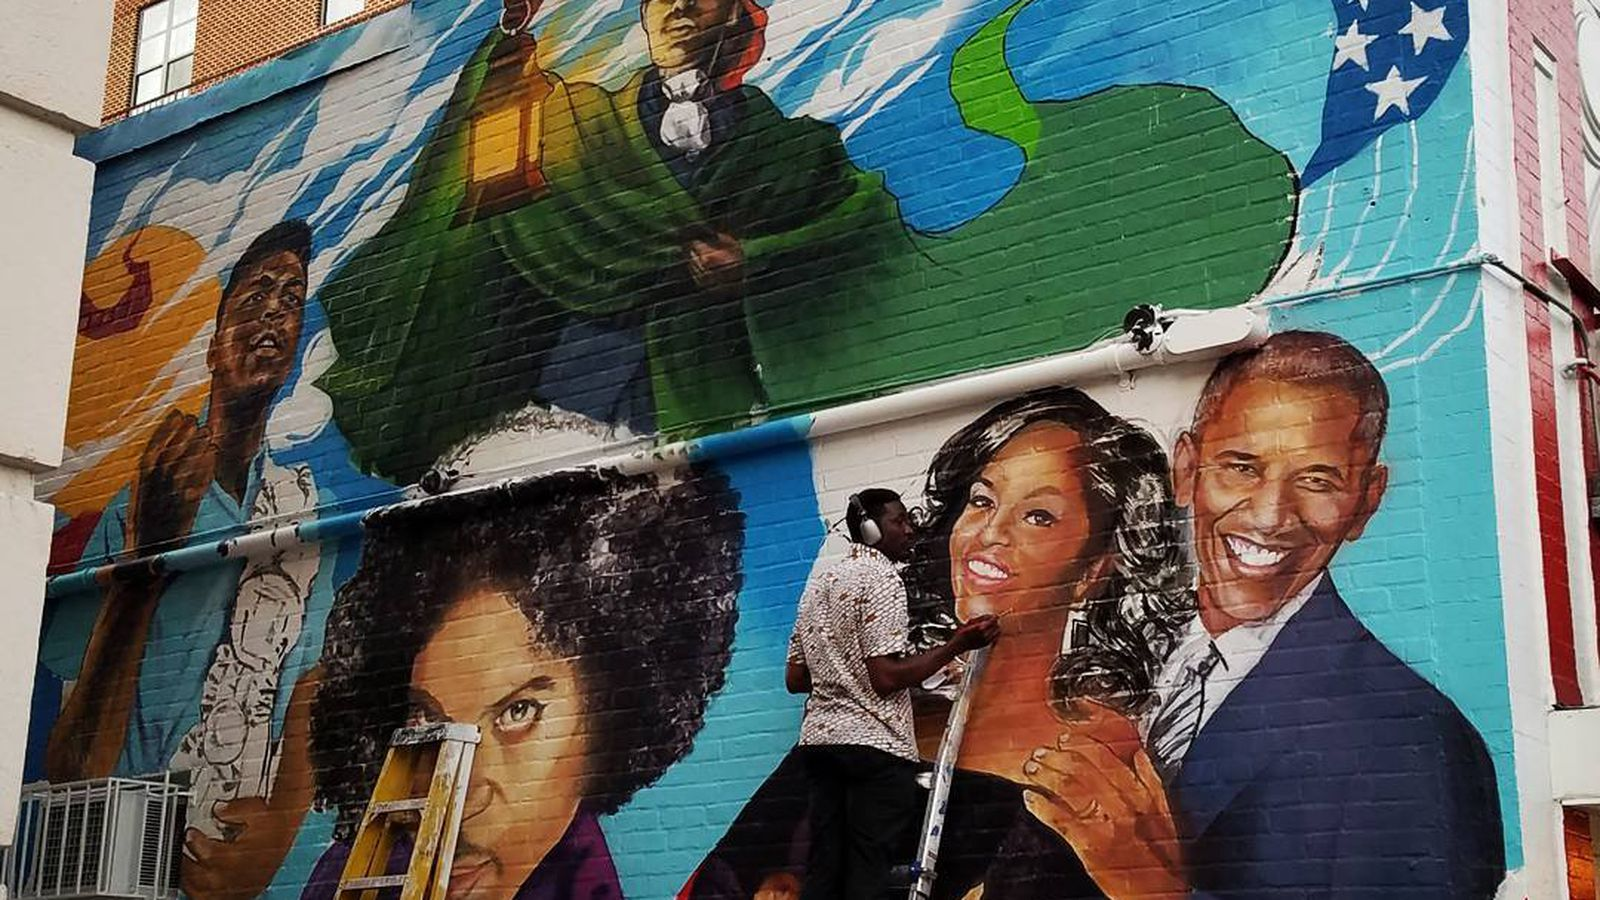 Ben s chili bowl s new mural revealed in eight photos for Chuck brown mural